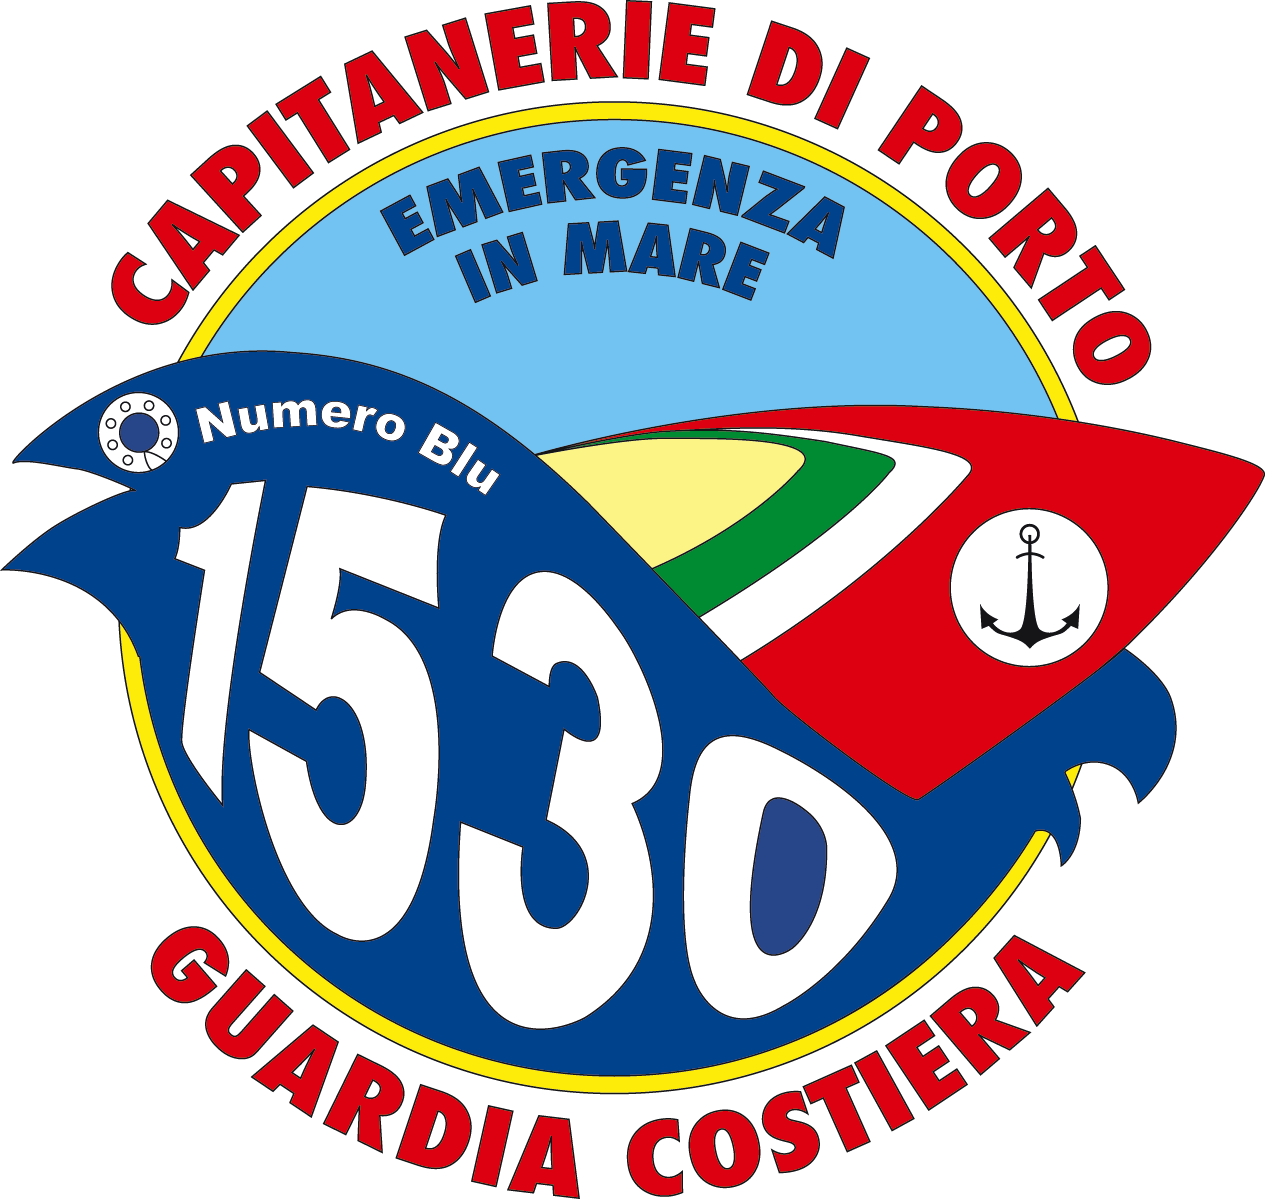 Guardia Costiera 1530 - Emergenza Mare